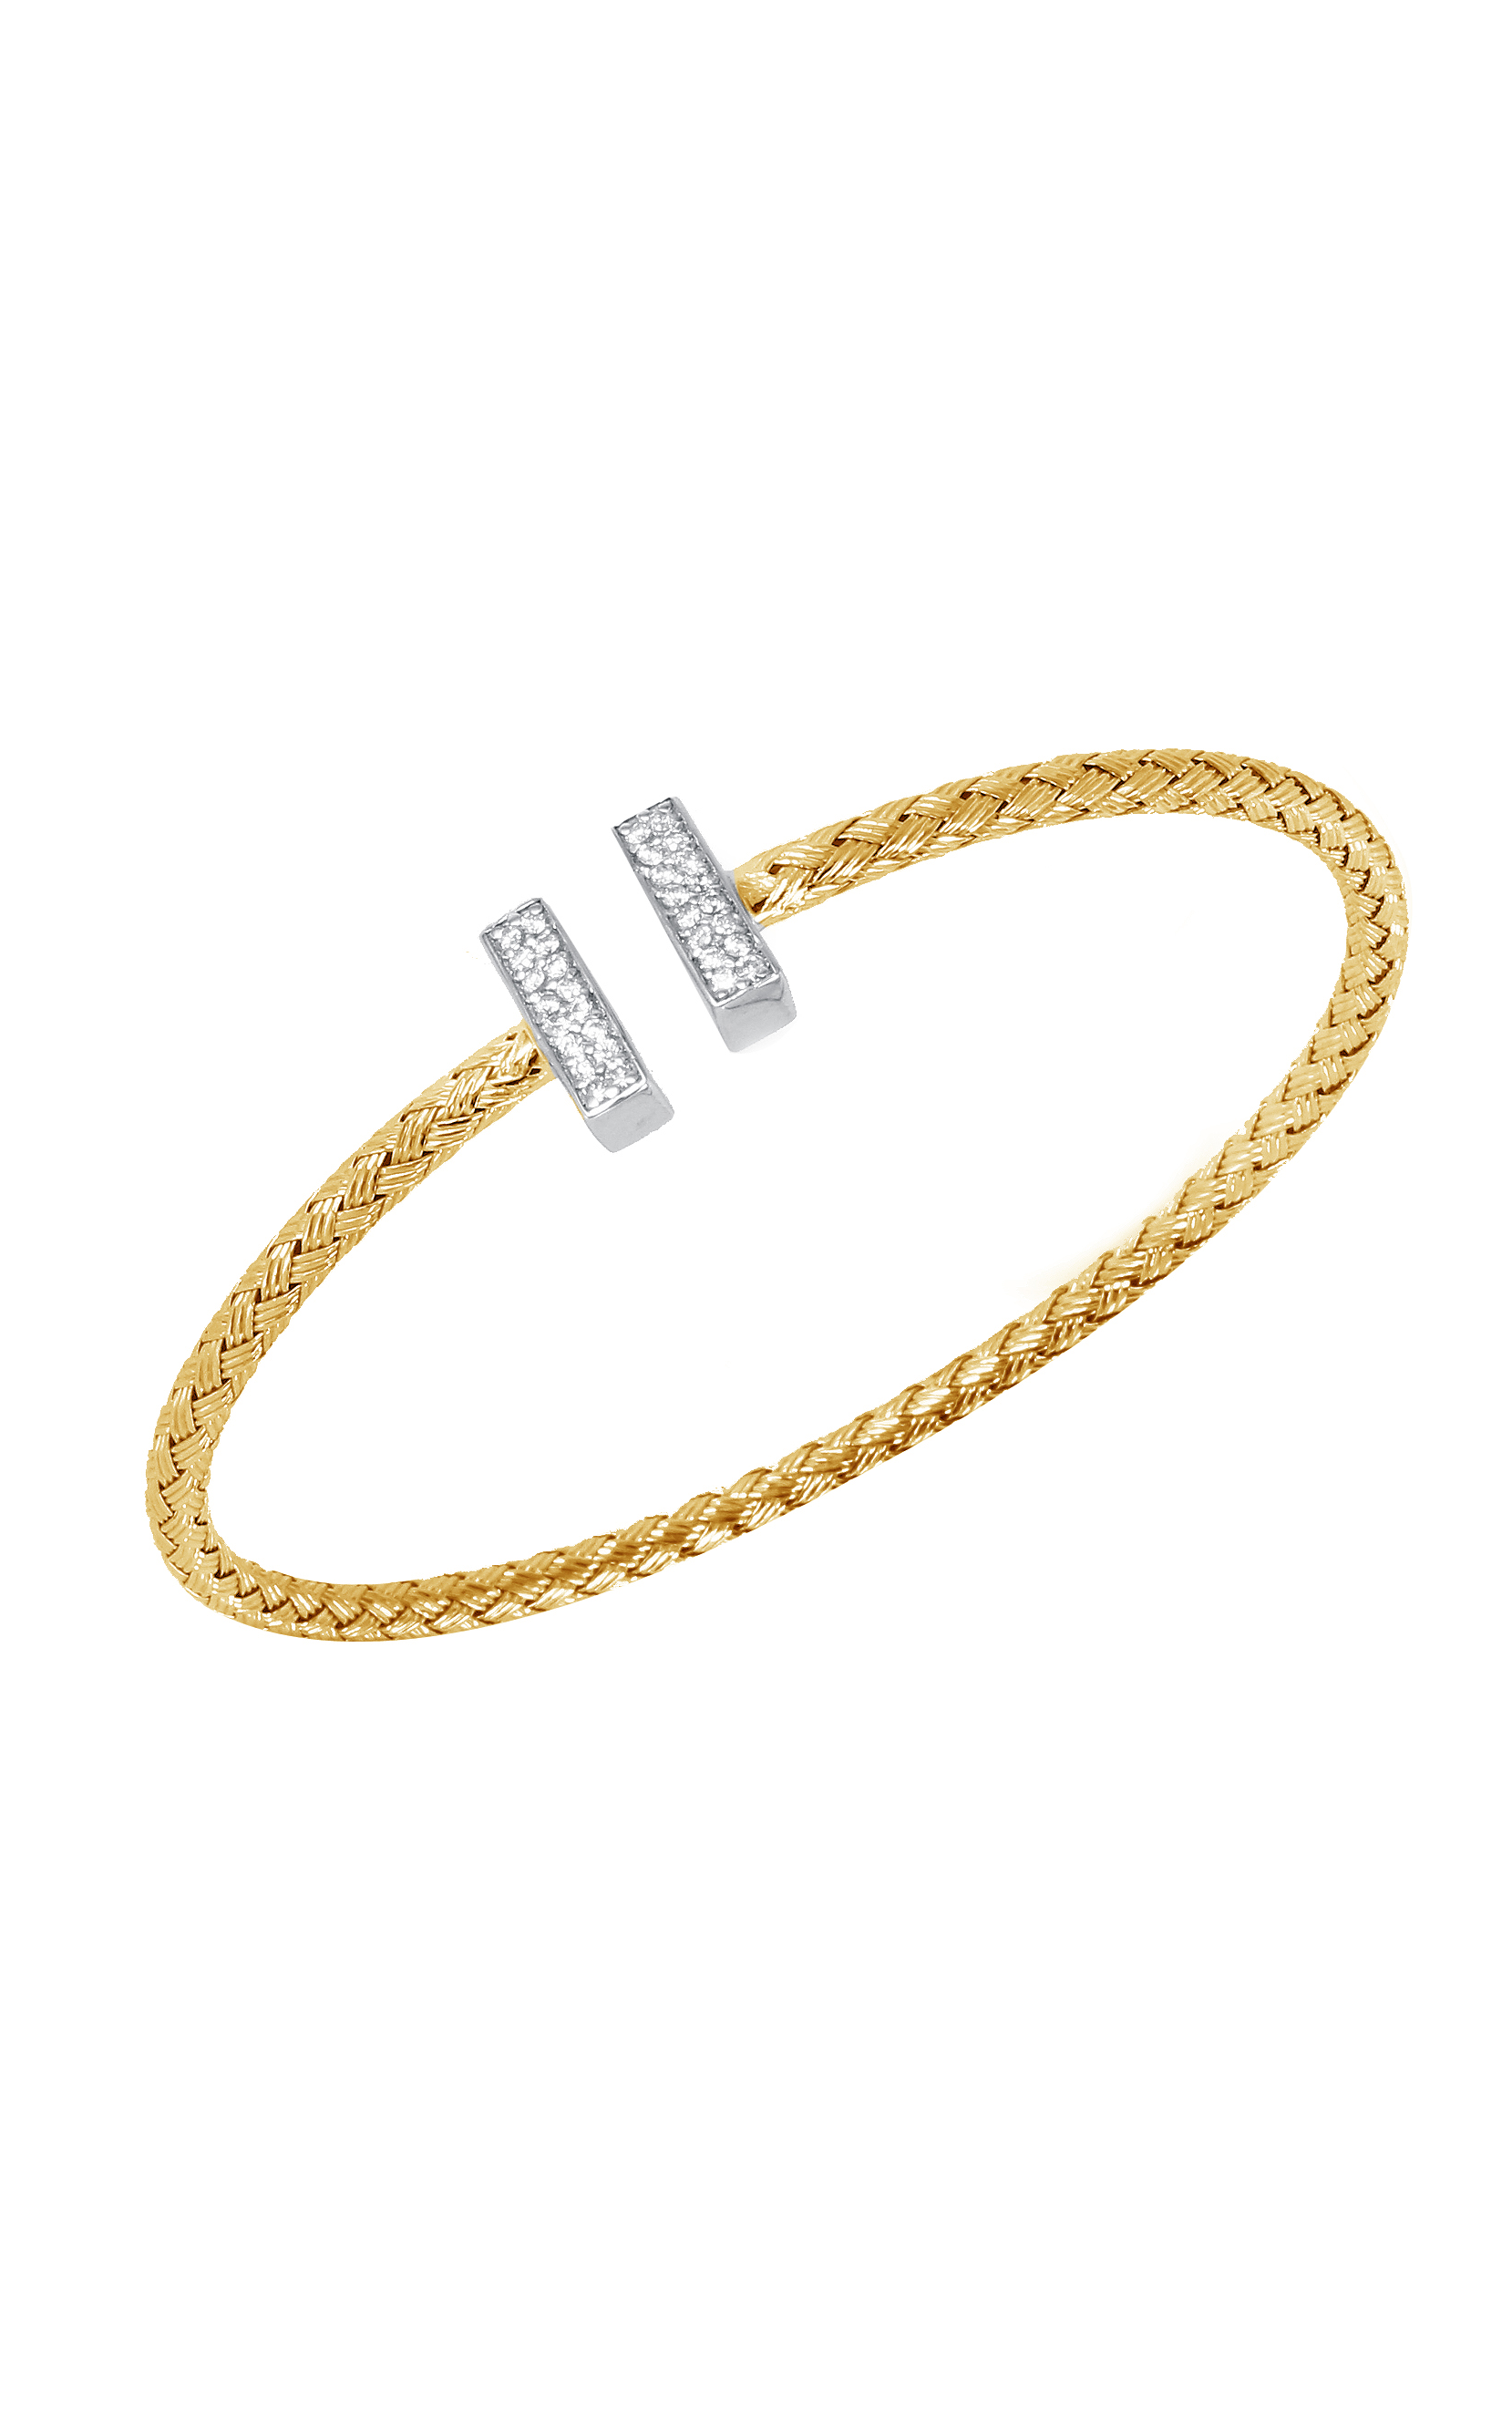 Charles Garnier Bracelet Paolo Collection MLC8182YWZ product image